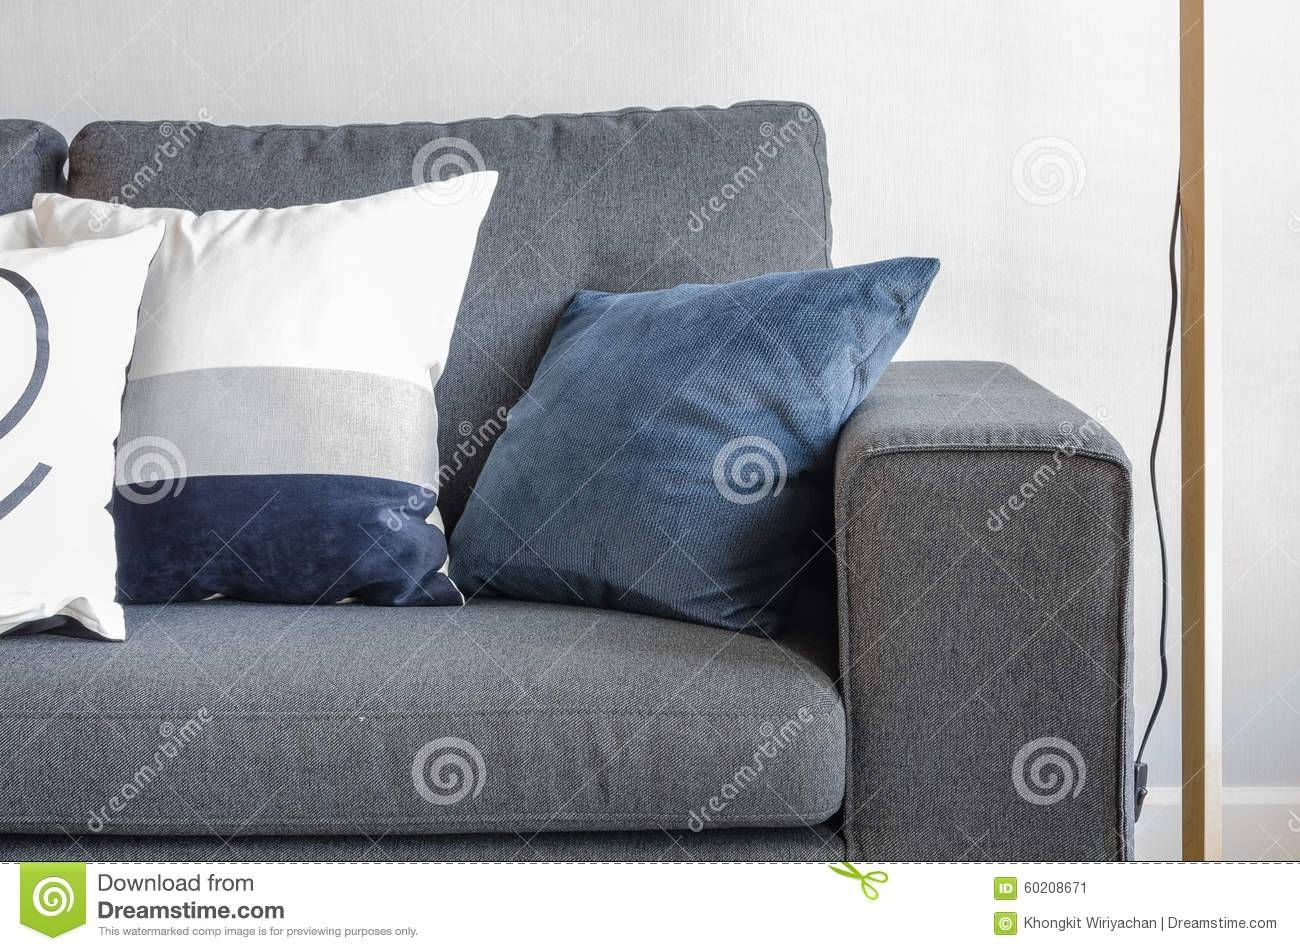 Blue Pillows On Modern Grey Sofa Stock Photo - Image: 60208671 intended for Blue Grey Sofas (Image 2 of 15)